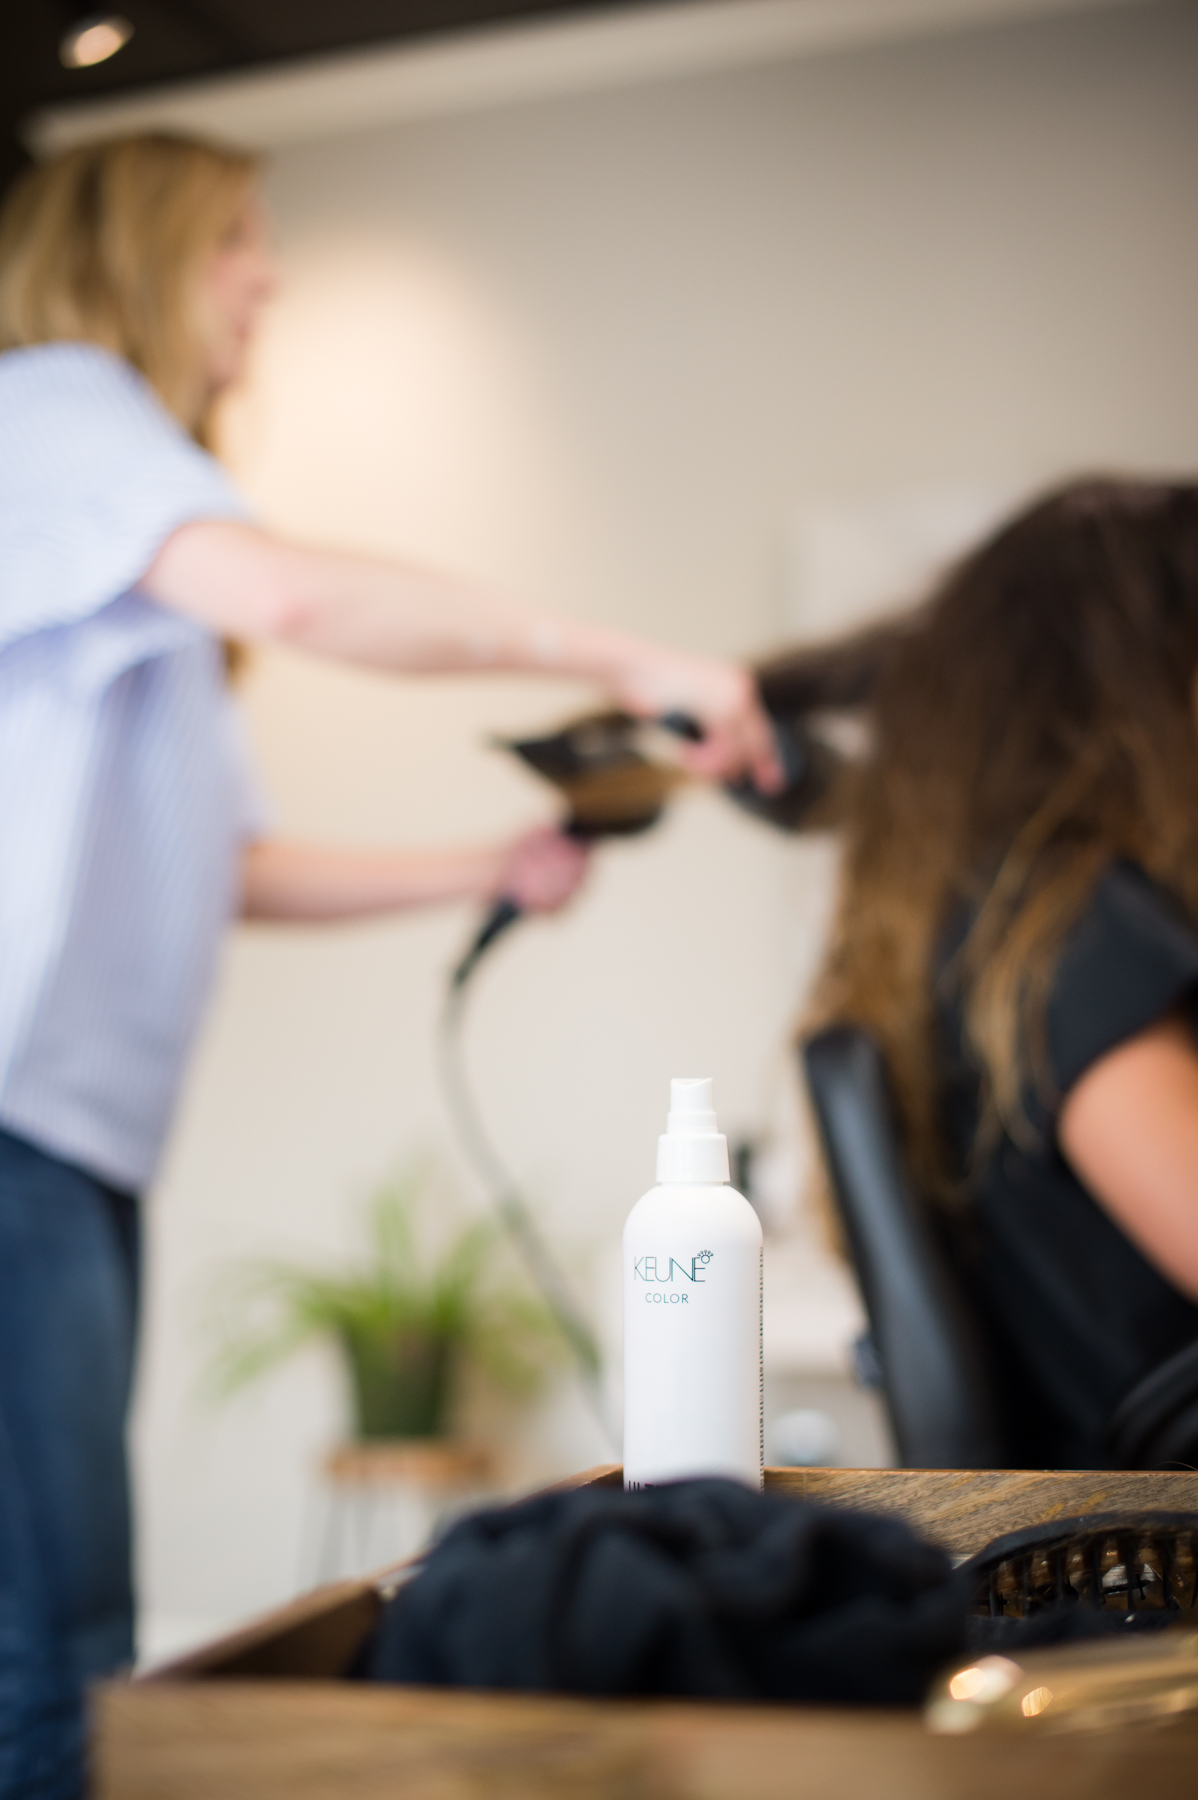 Brittany Hall blow dries a woman's hair out of focus with a bottle of hair styling product in the foreground.